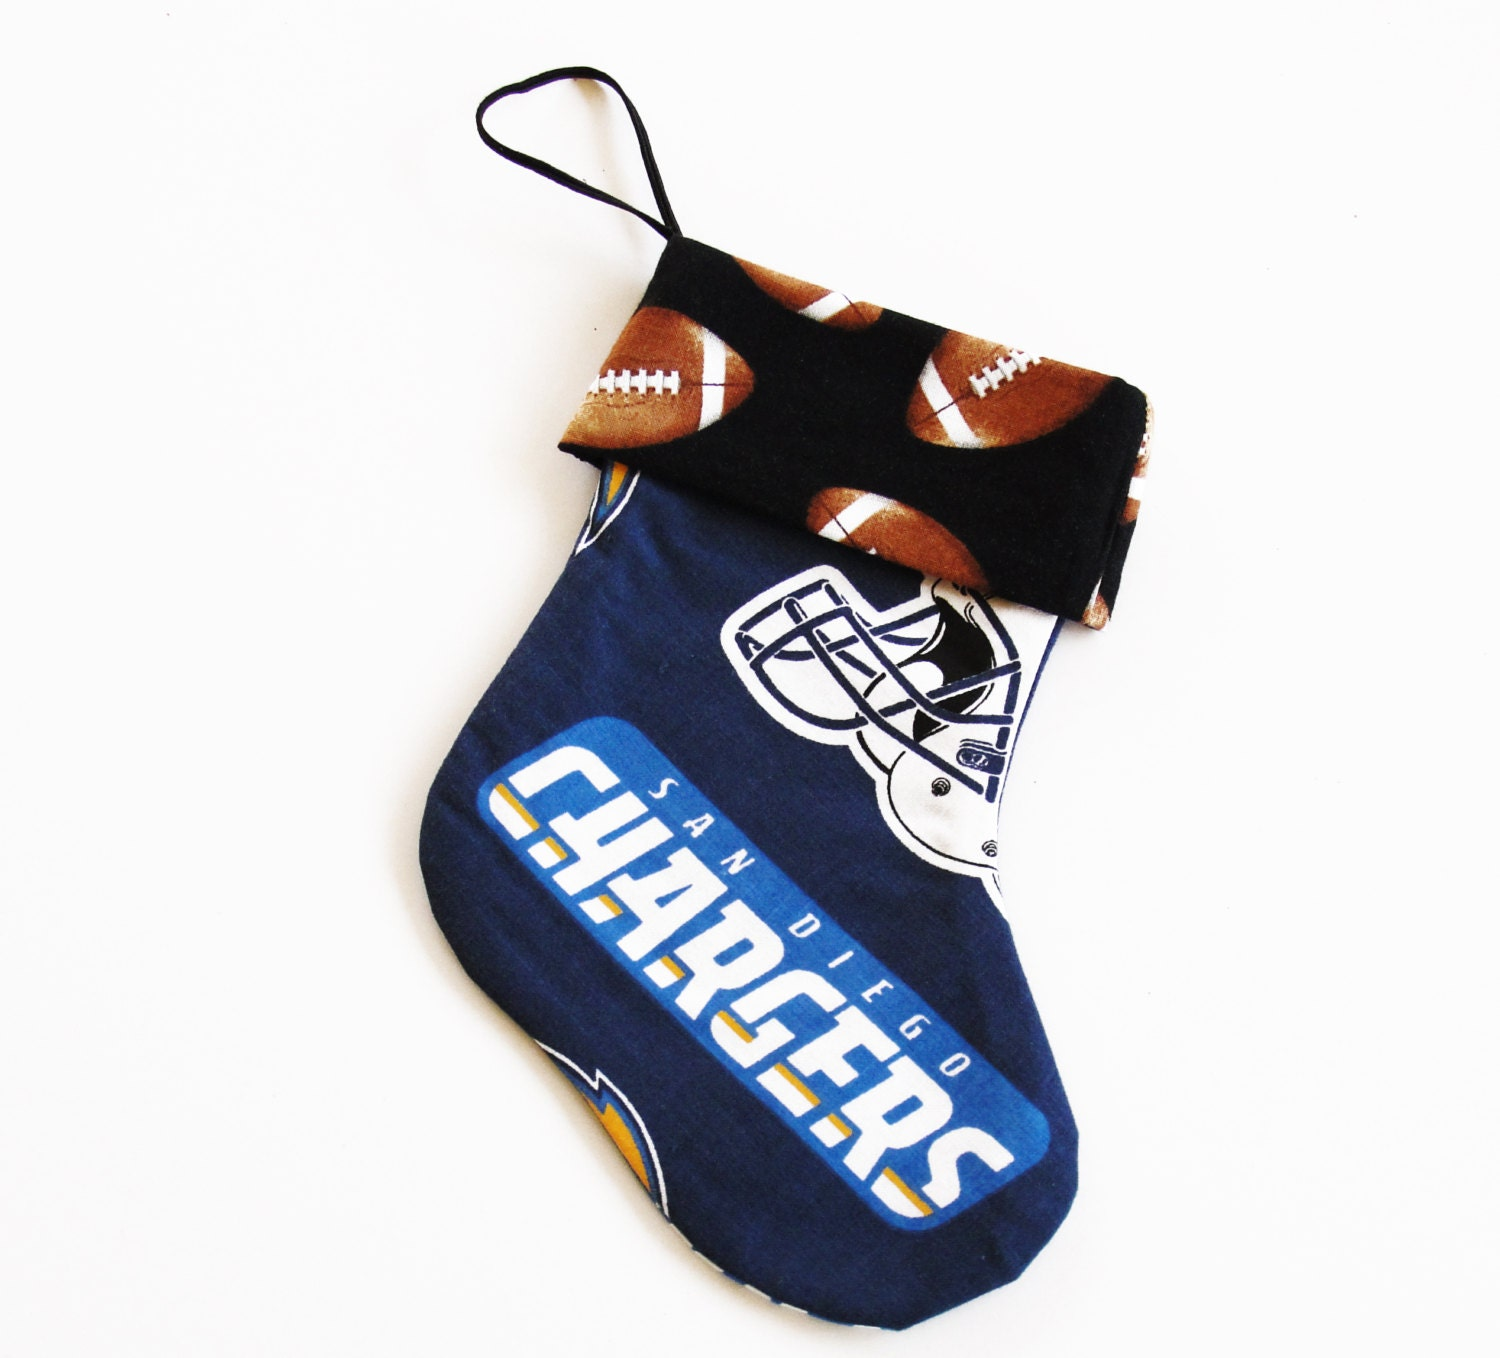 San Diego Chargers Fan: San Diego Chargers Mini Christmas Stocking For A Football Fan